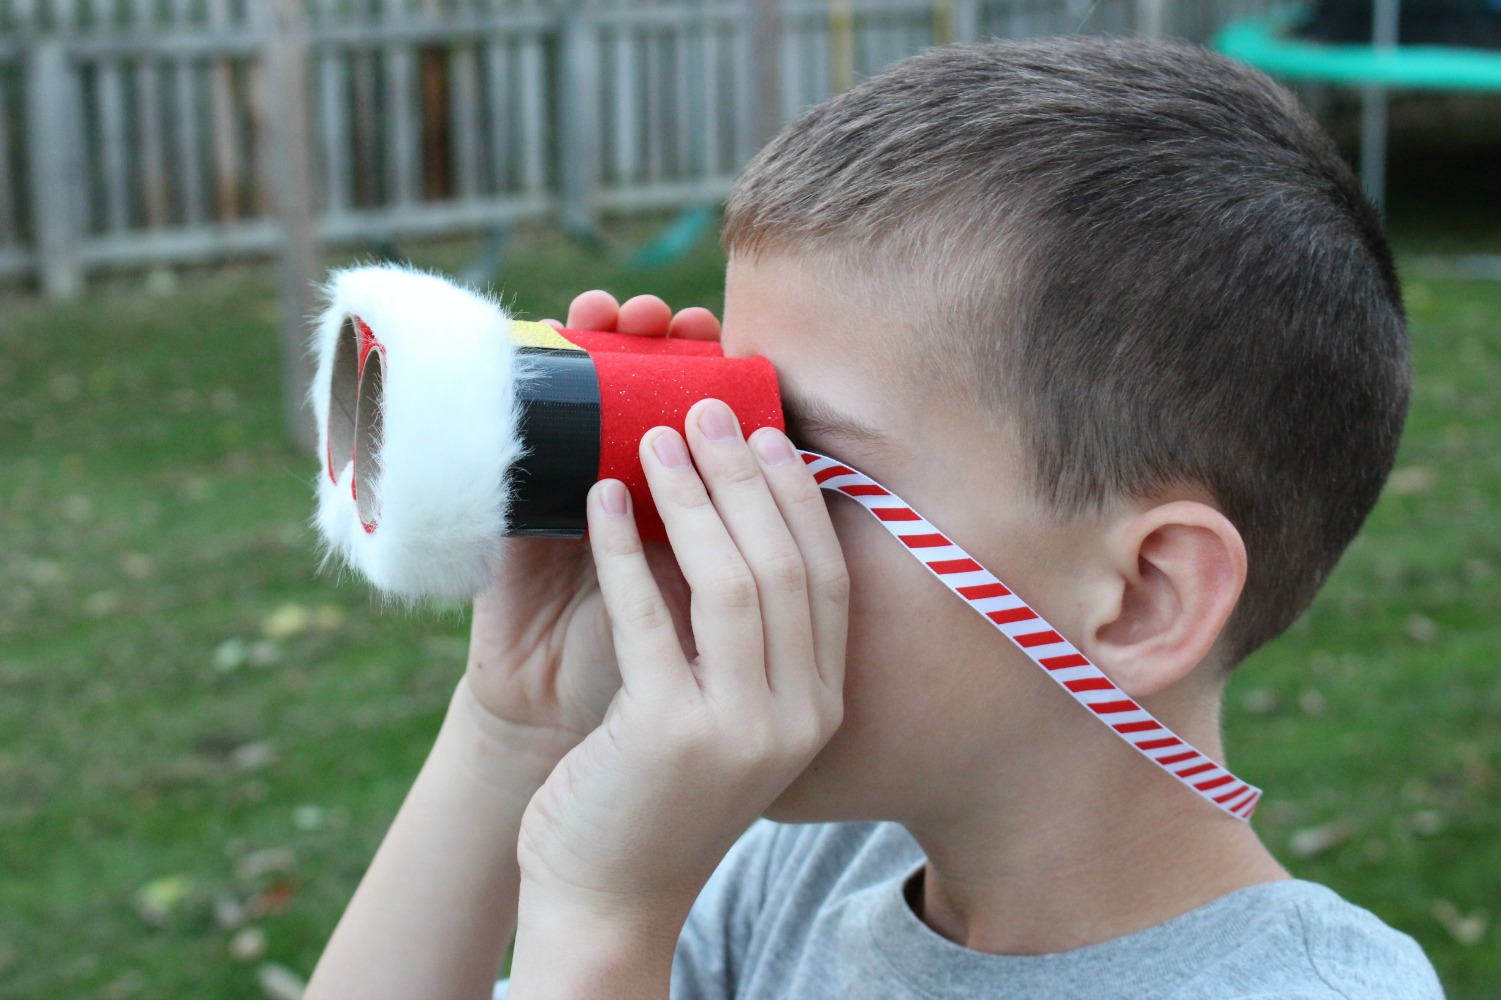 Santa Binoculars Christmas Craft for Kids, These DIY Santa Binoculars Christmas Craft are perfect for kids to make in December, This is an easy Christmas Craft for Kids, You can make an adorable Santa craft with your kids to Search for Santa with their very own DIY Santa binoculars